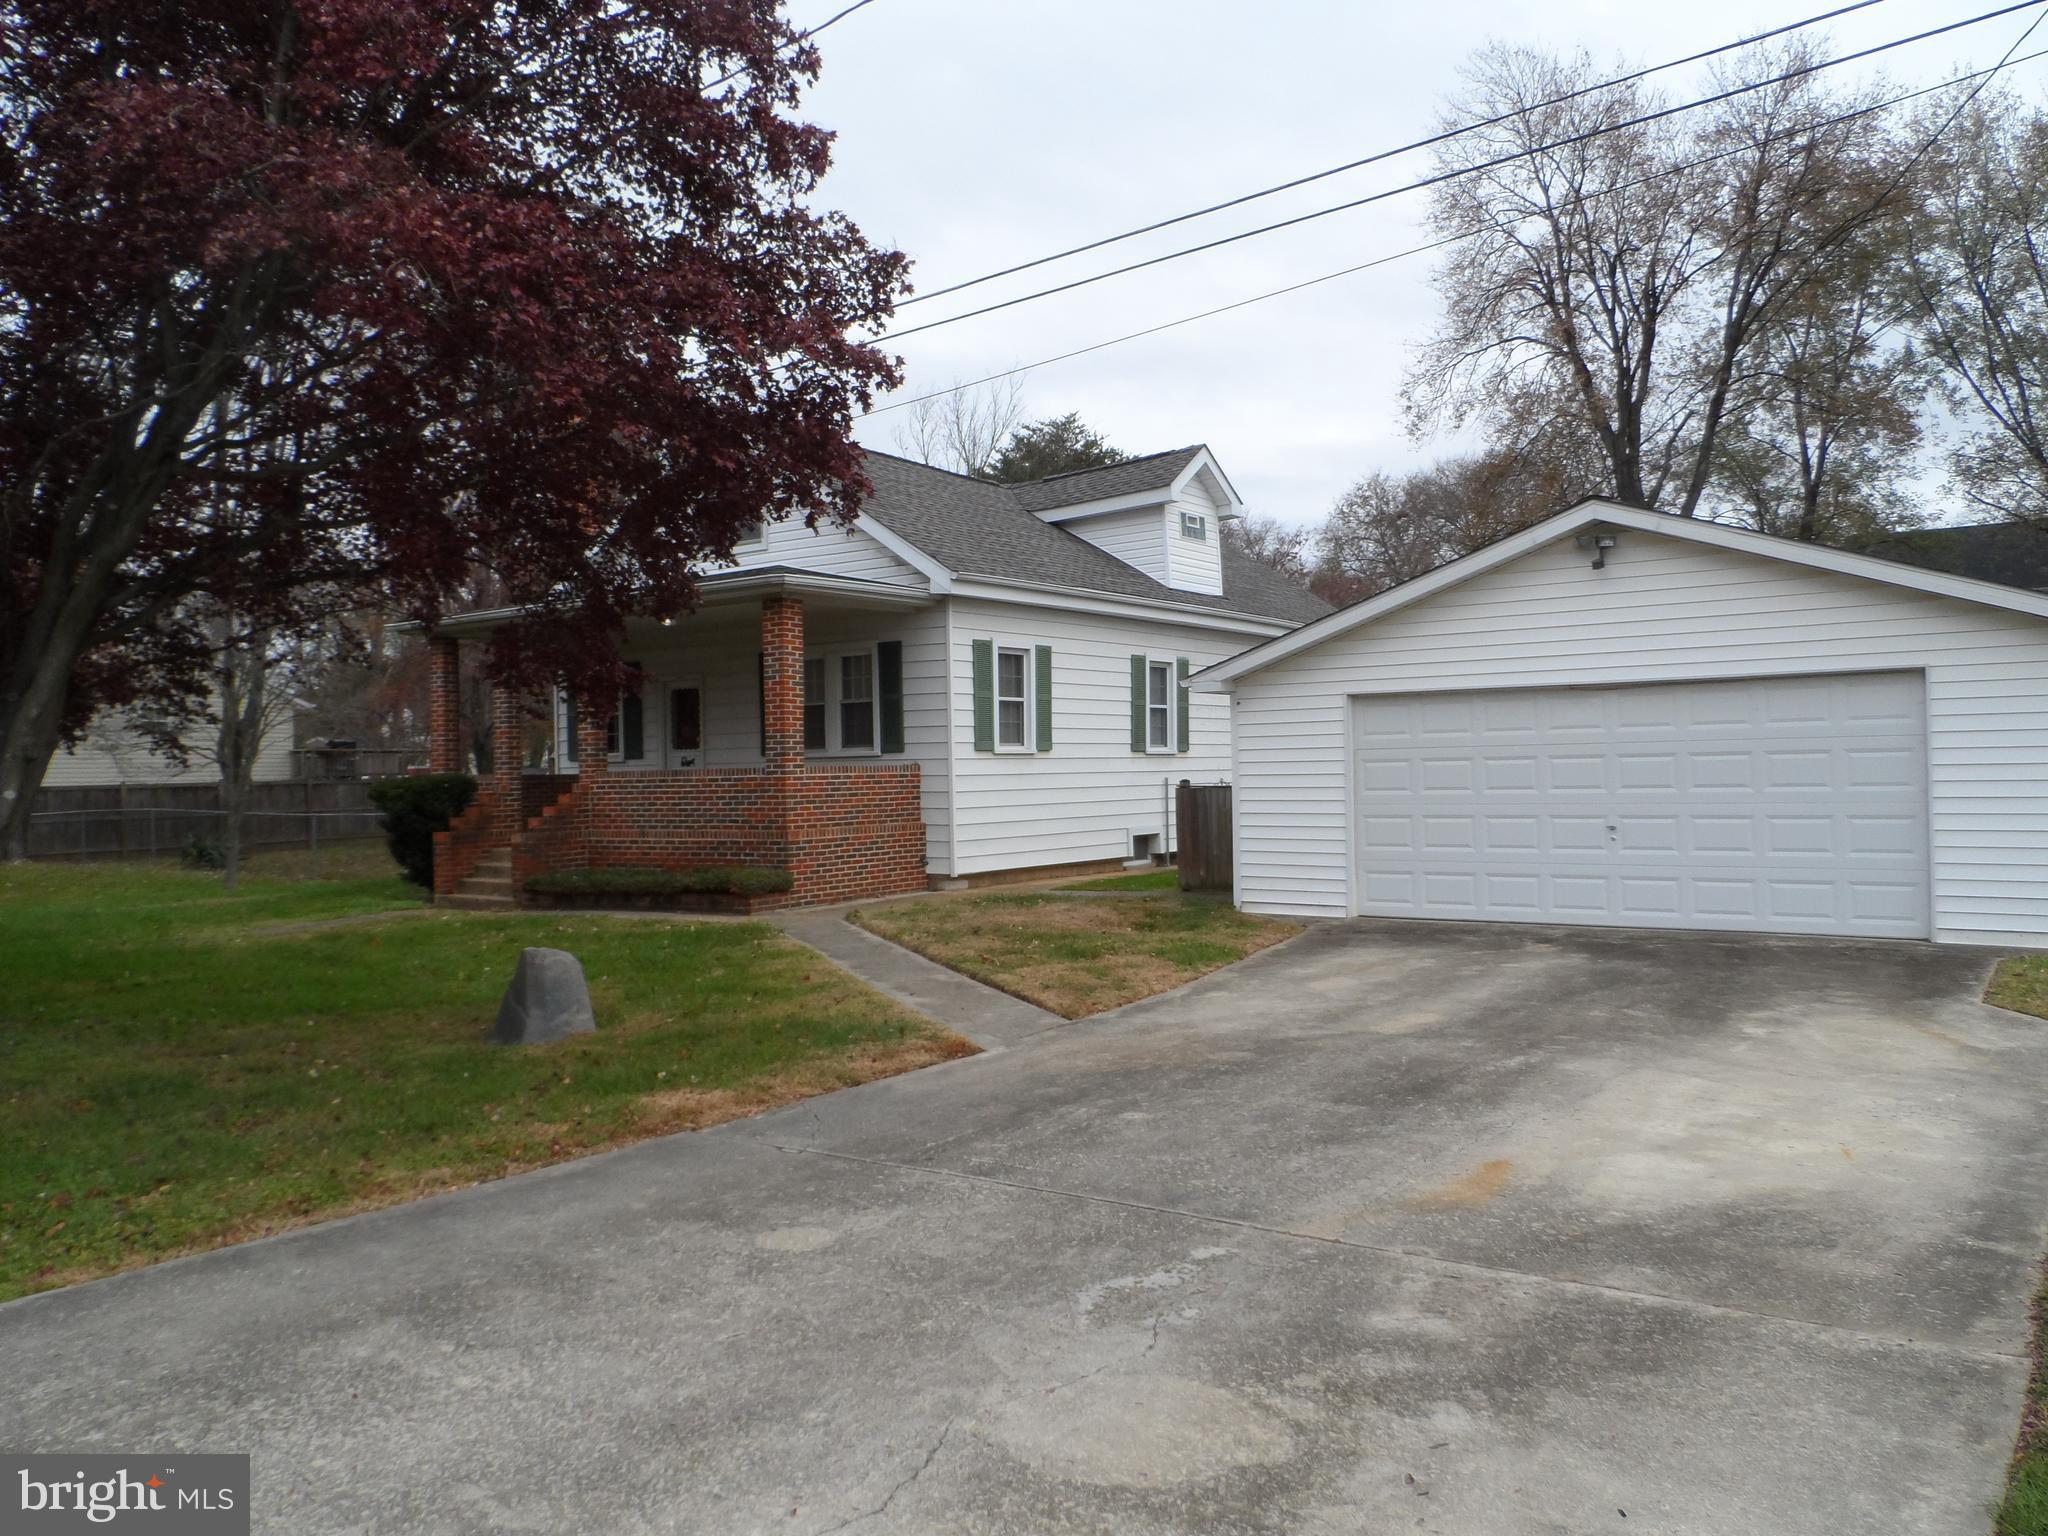 4 Bedroom 2 Full bath Cape Cod located on over 0.38+/- acre lot, which INCLUDES EXTRA BUILDING LOT!